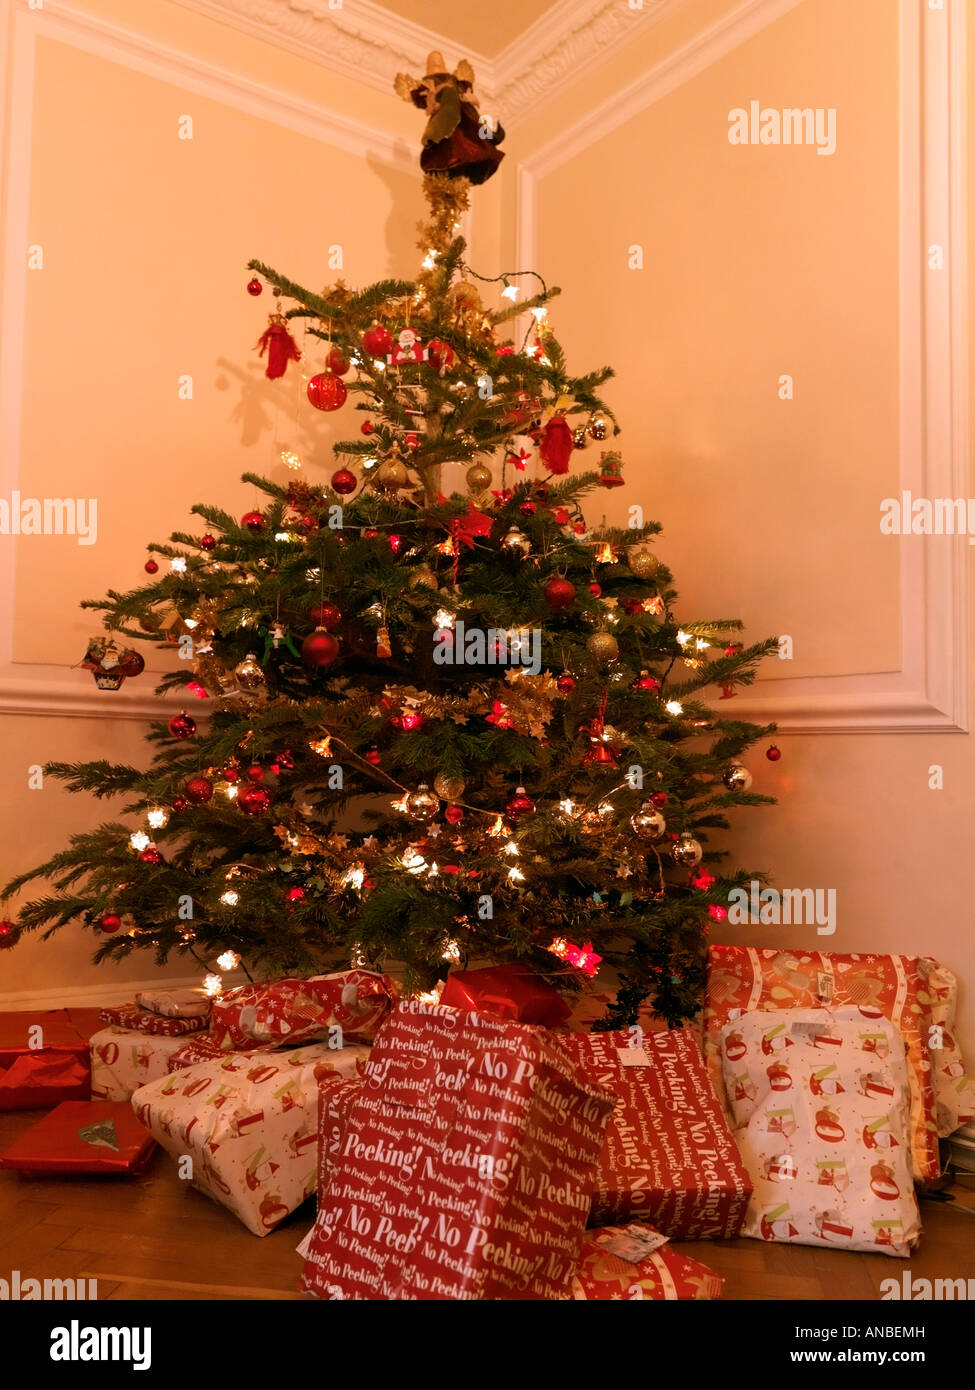 Christmas Tree With Presents And Angel On Top In Lounge Stock Photo